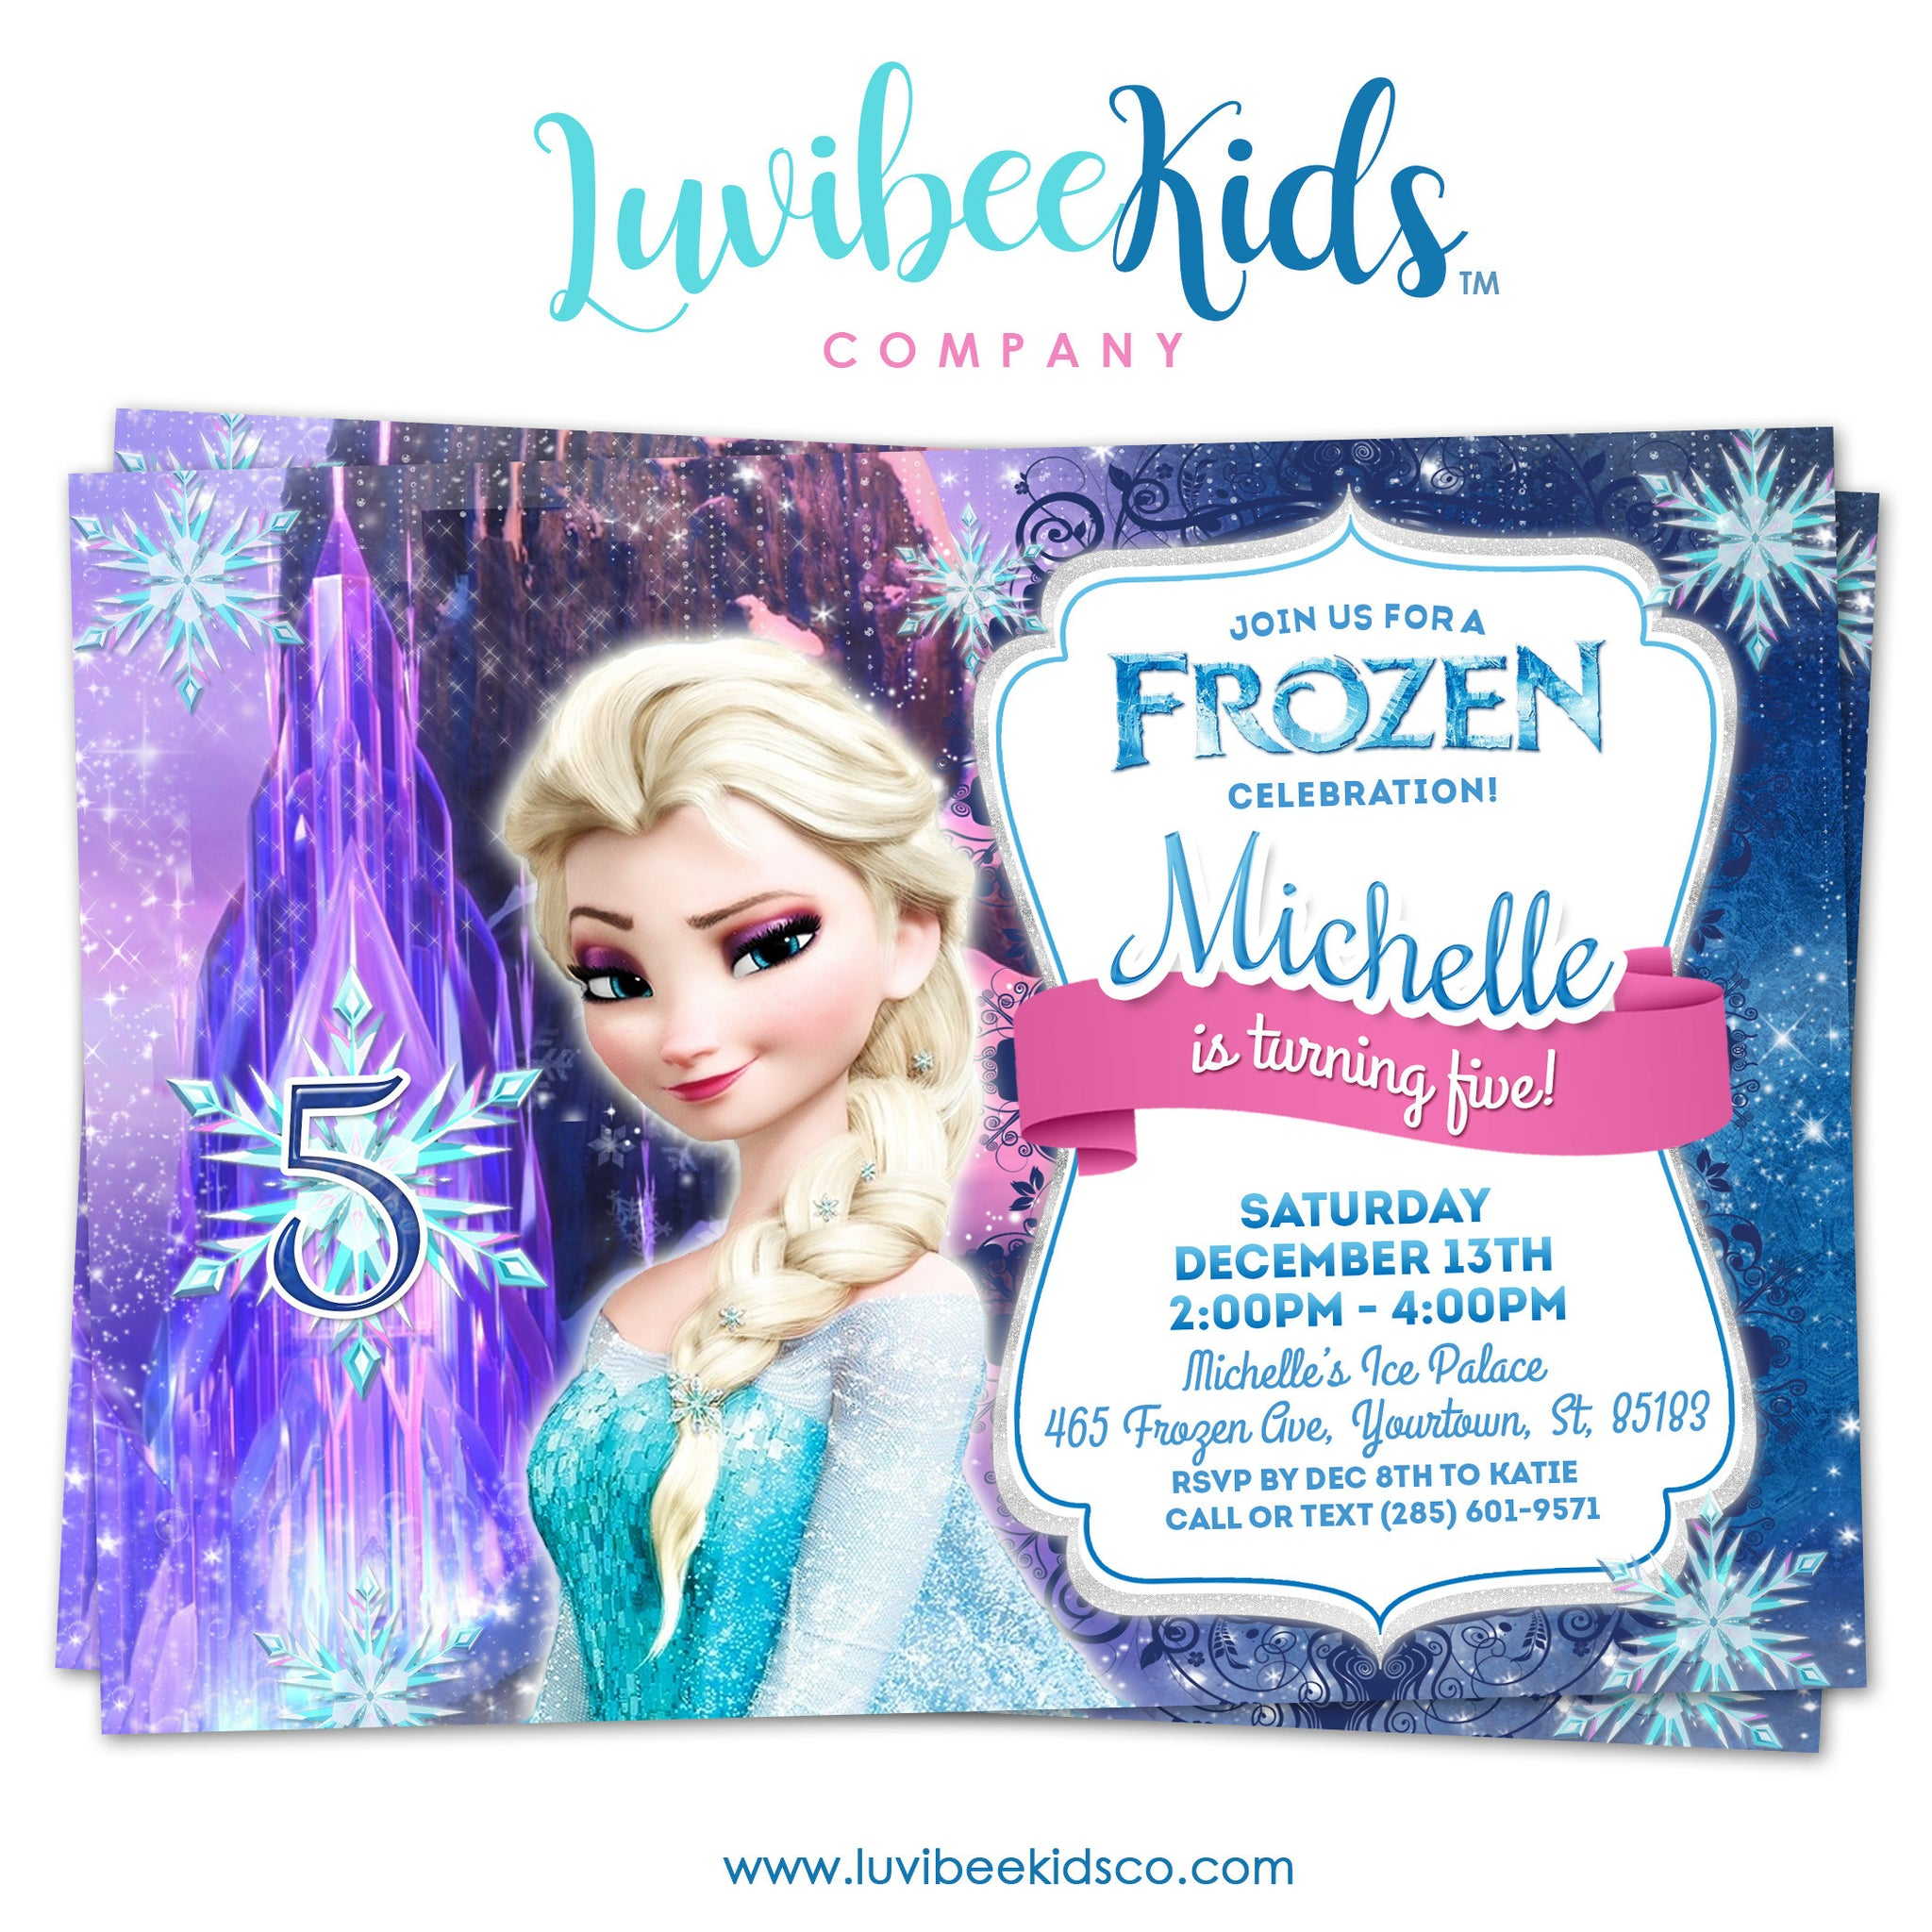 image regarding Frozen Birthday Card Printable named Frozen Birthday Invitation Frozen Elsa Birthday Bash Printables